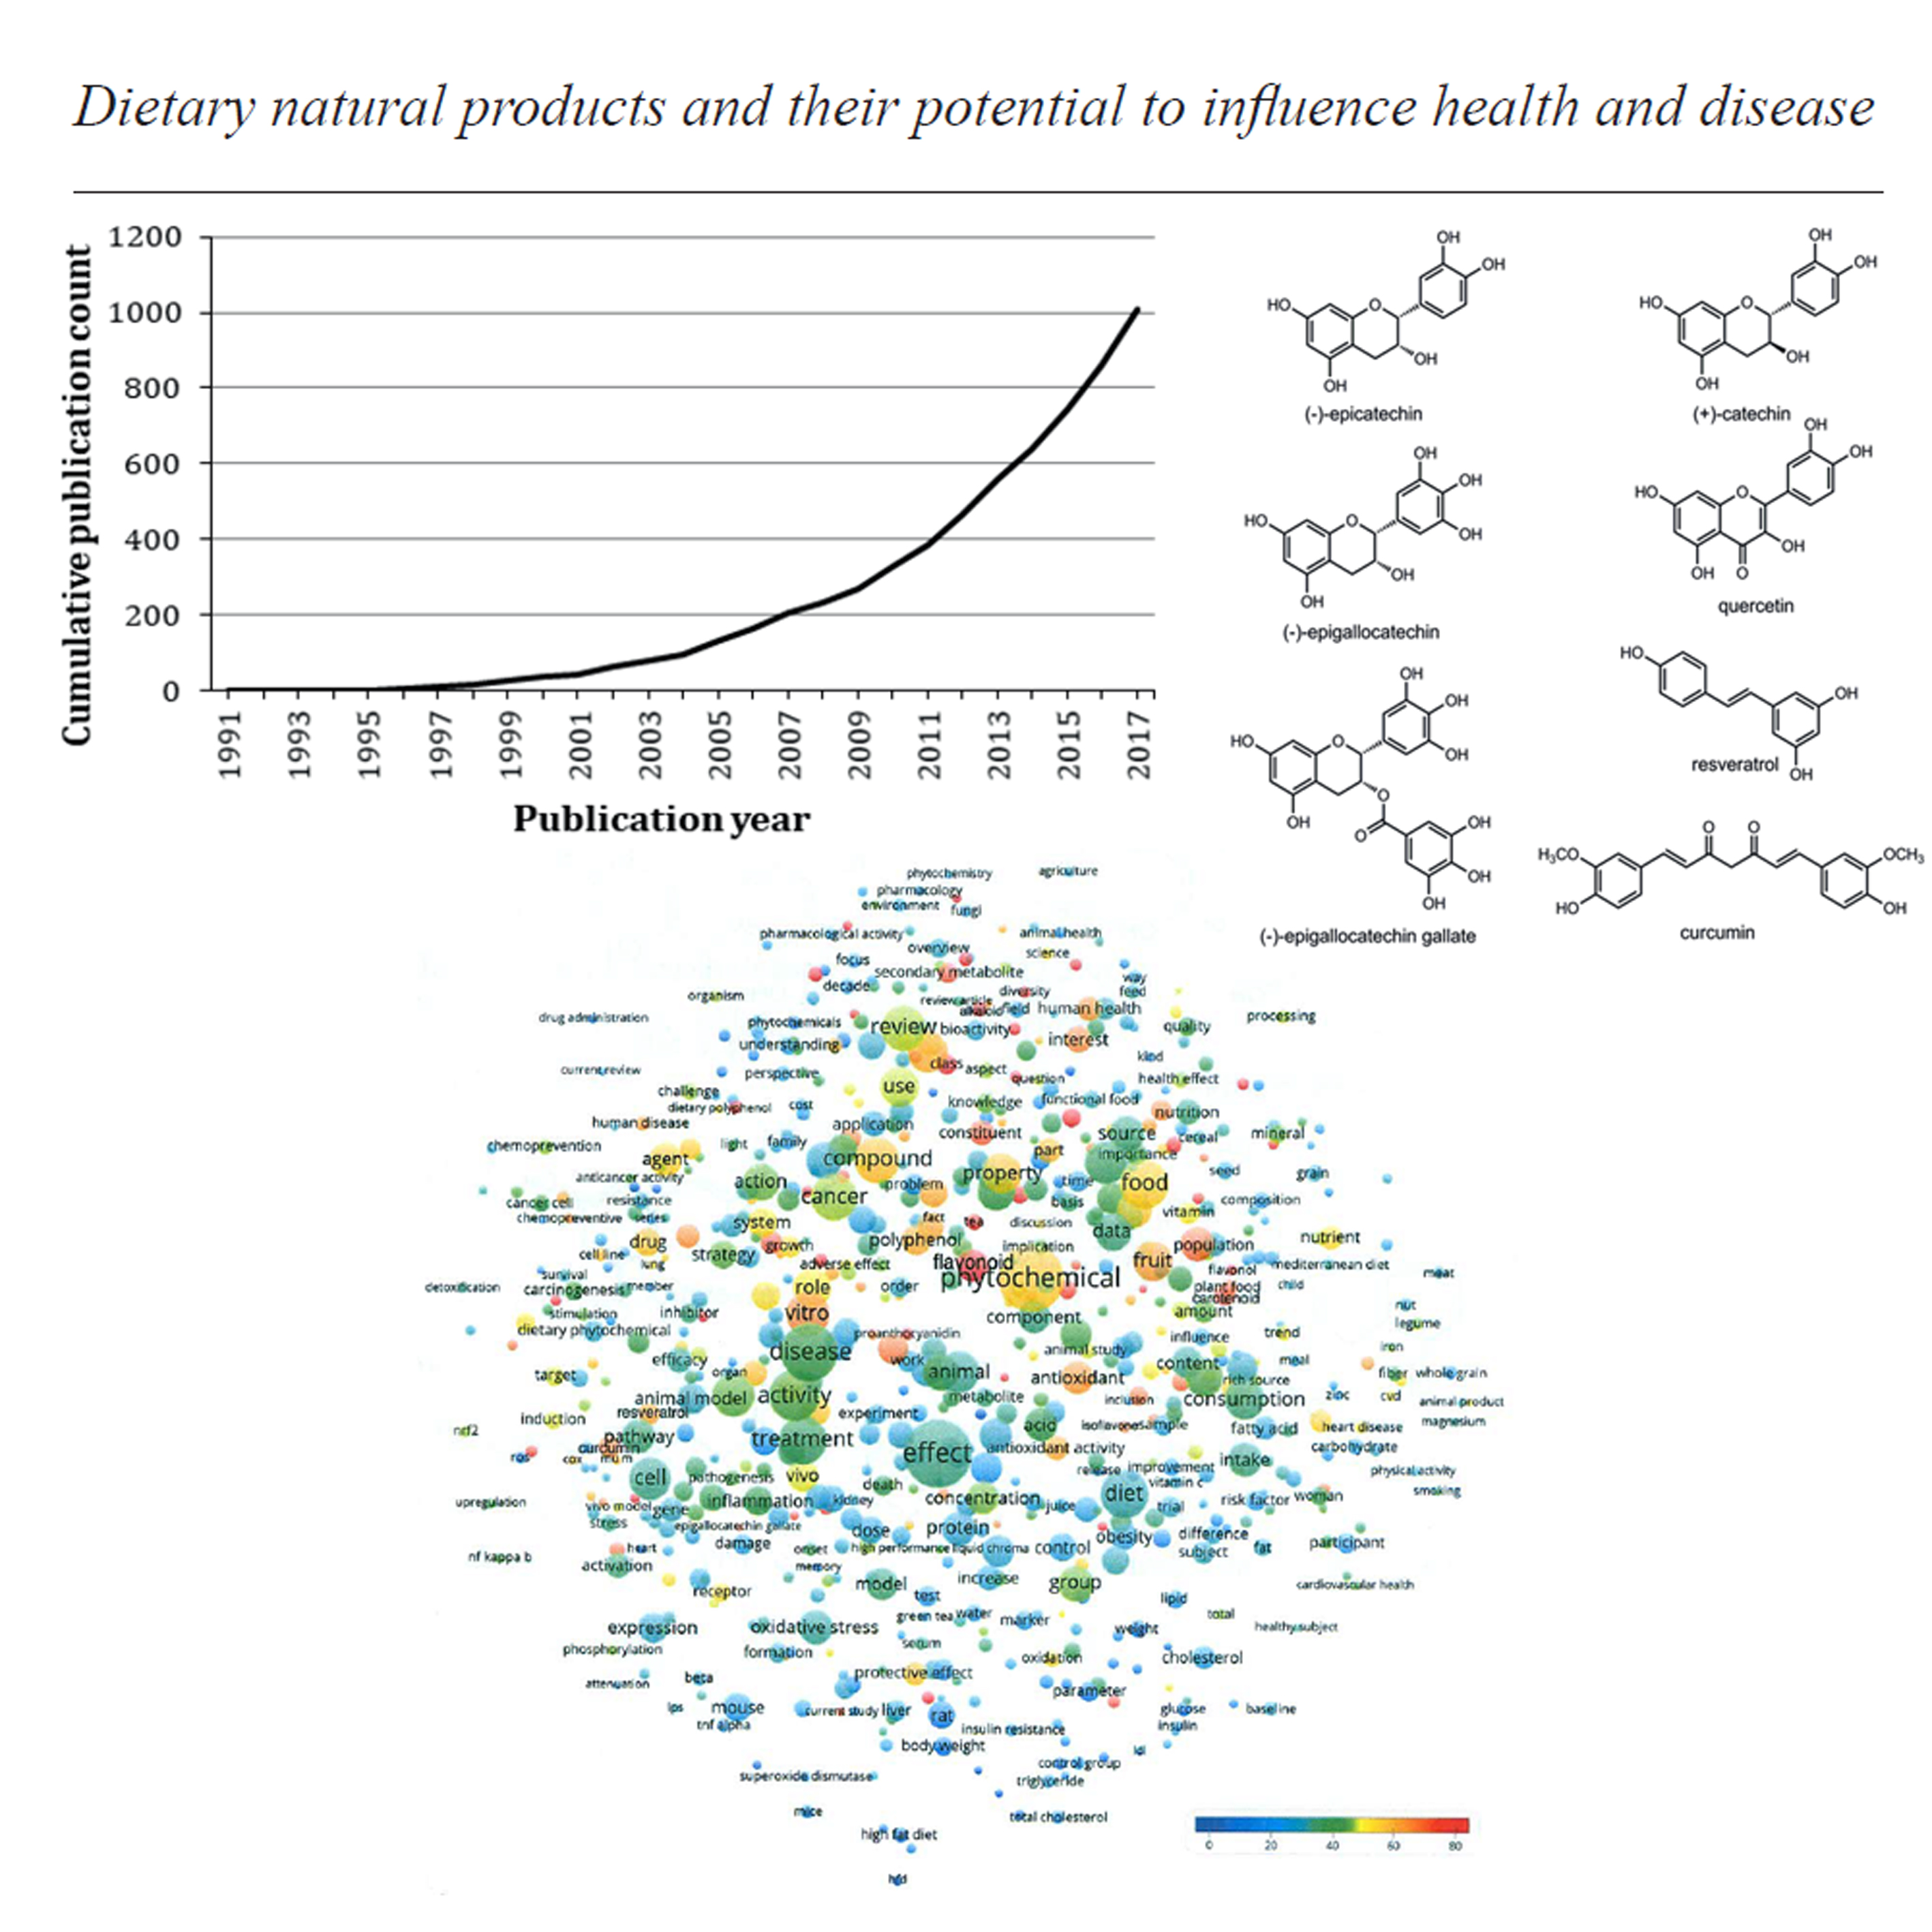 Dietary natural products and their potential to influence health and disease including animal models